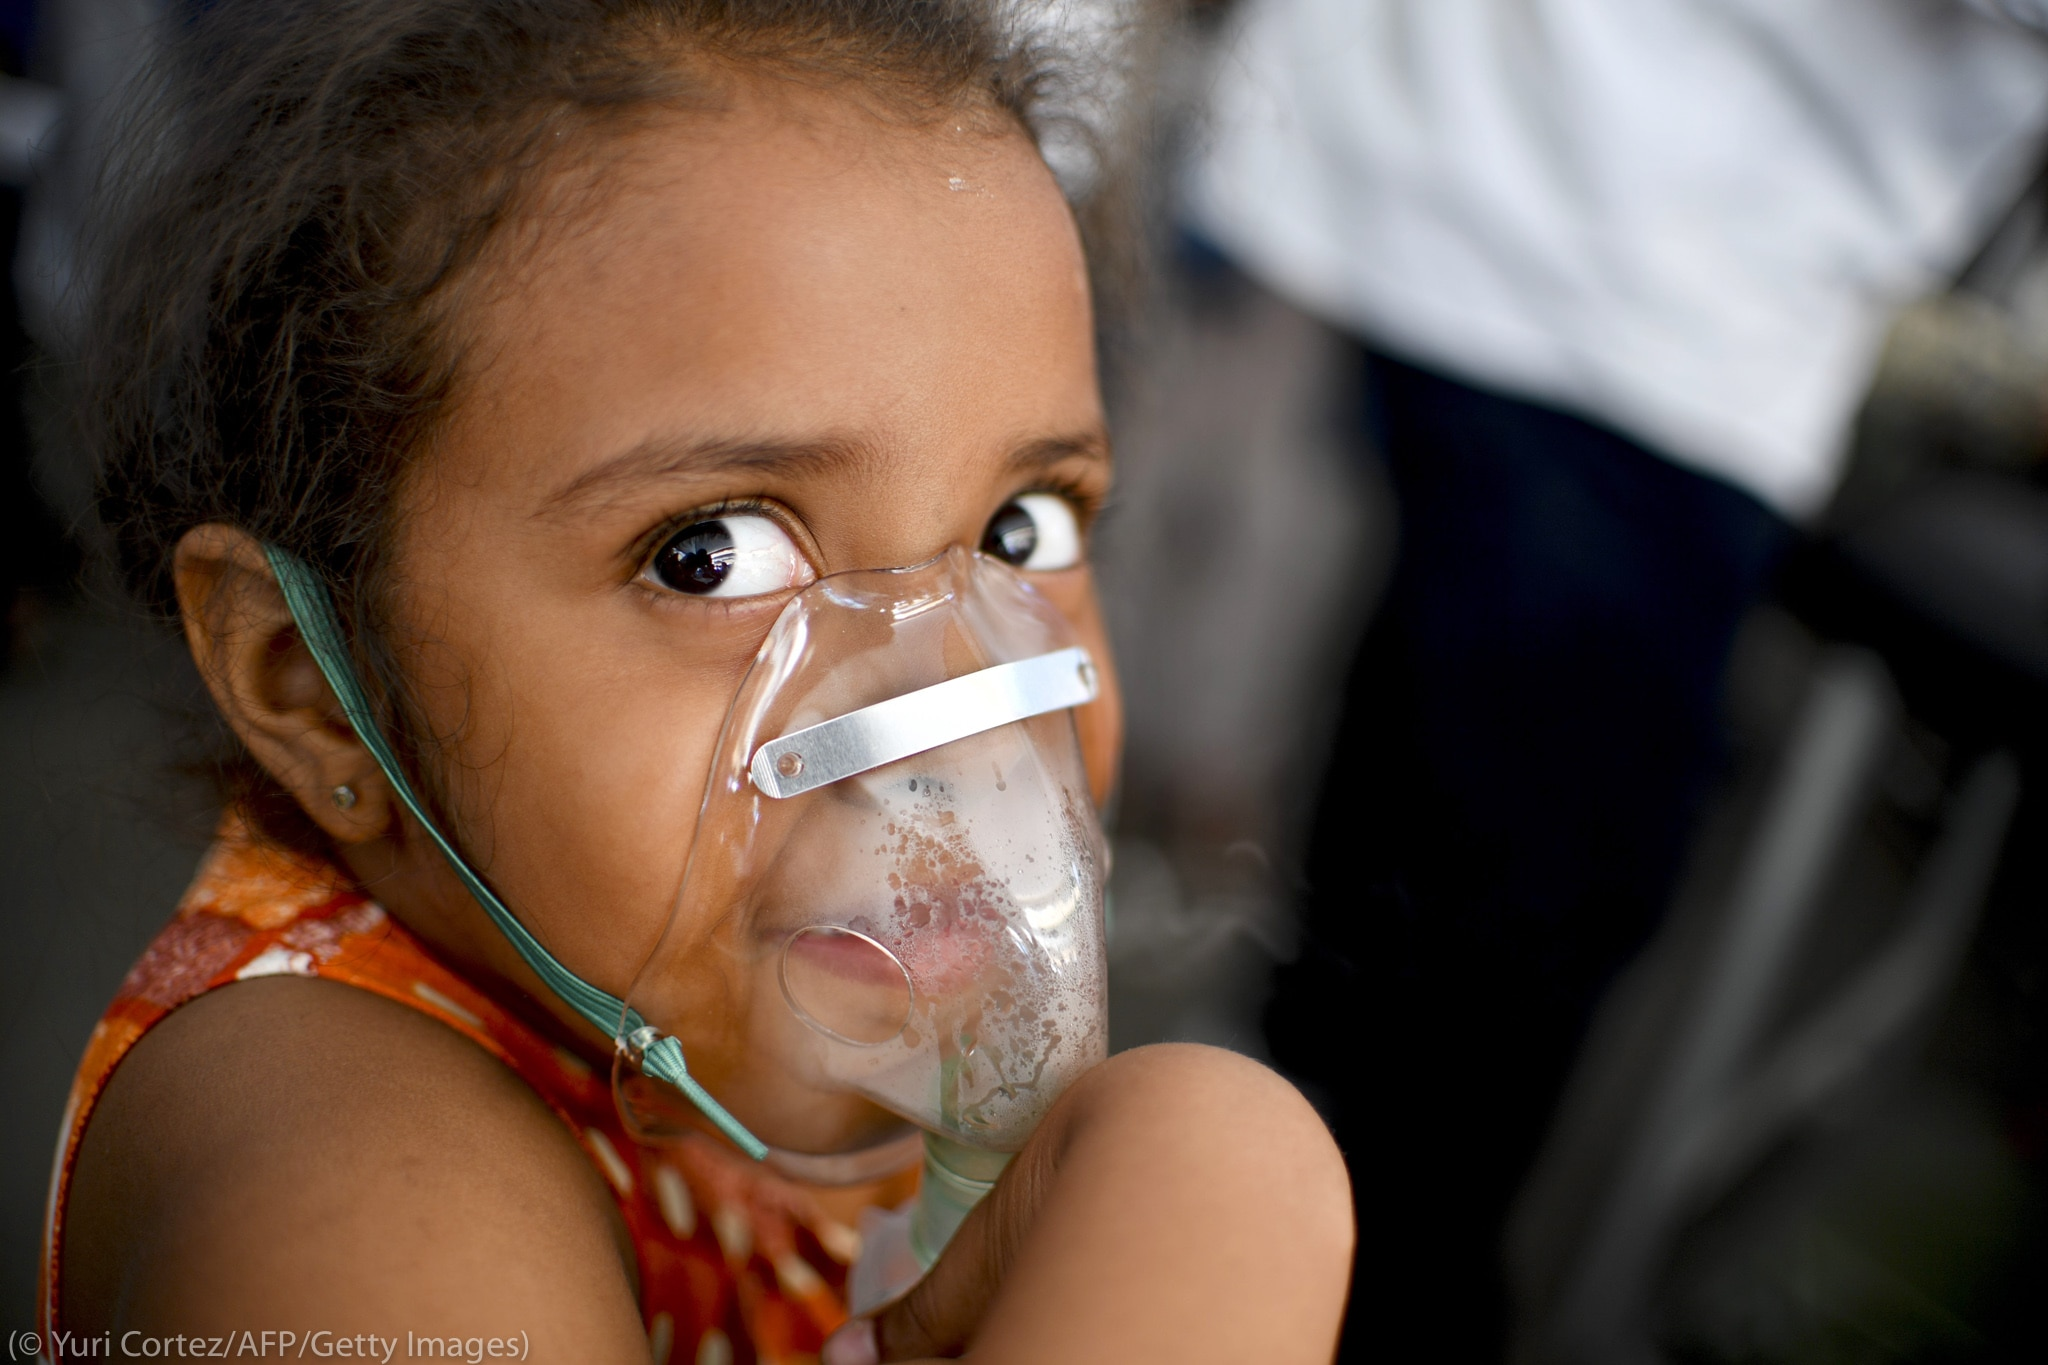 Girl wearing oxygen mask (© Yuri Cortez/AFP/Getty Images)